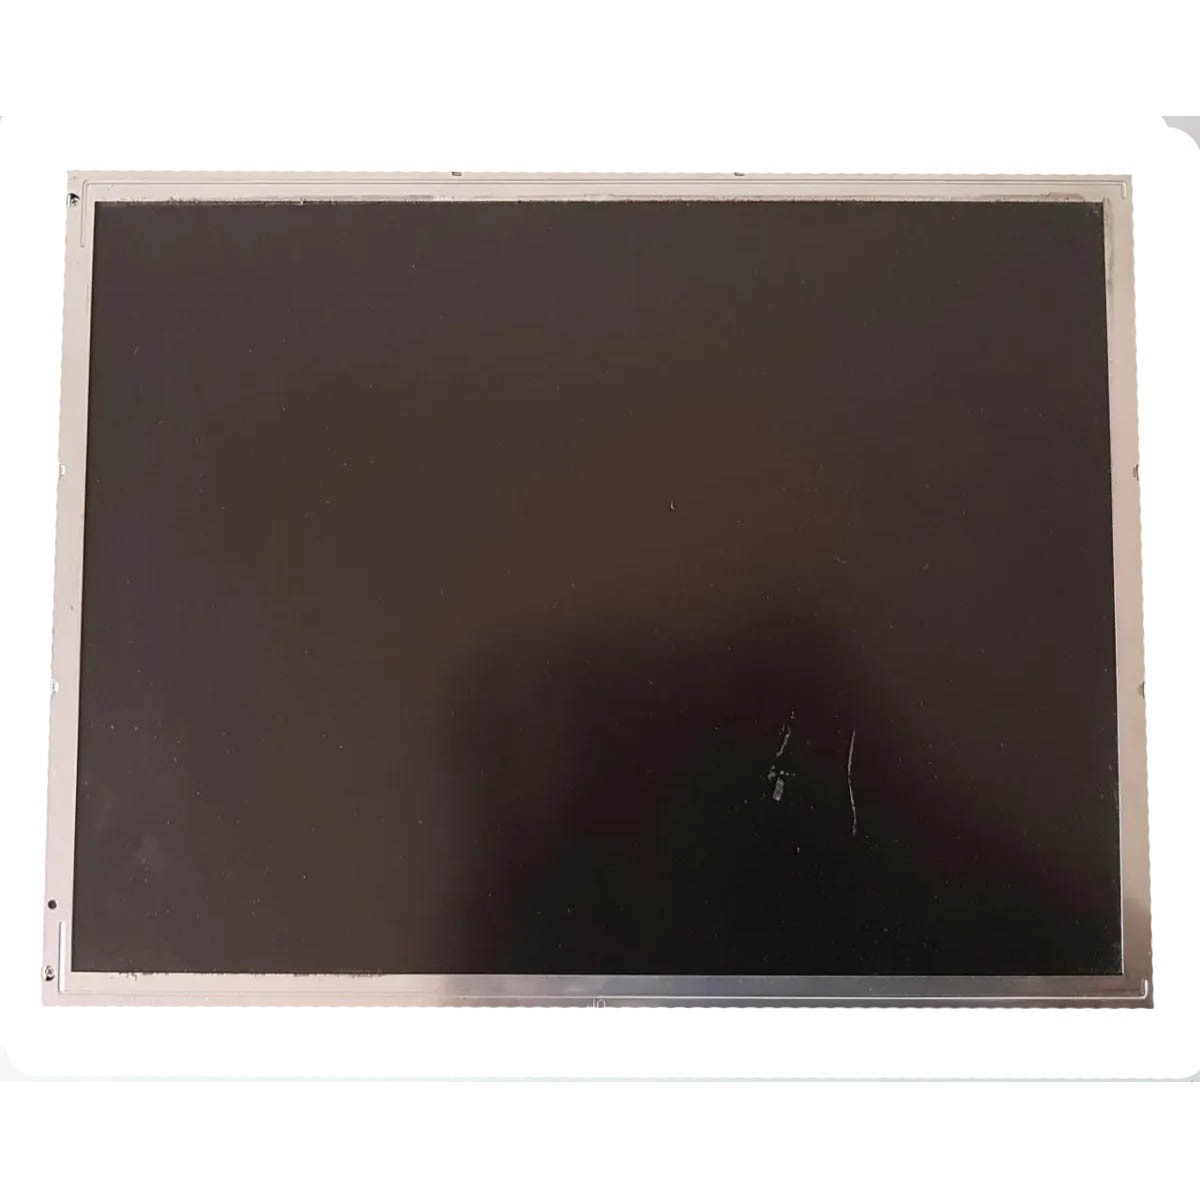 Tela Display LCD Monitor Philips / LG L15505-sn PN:LM150X08 - Retirado